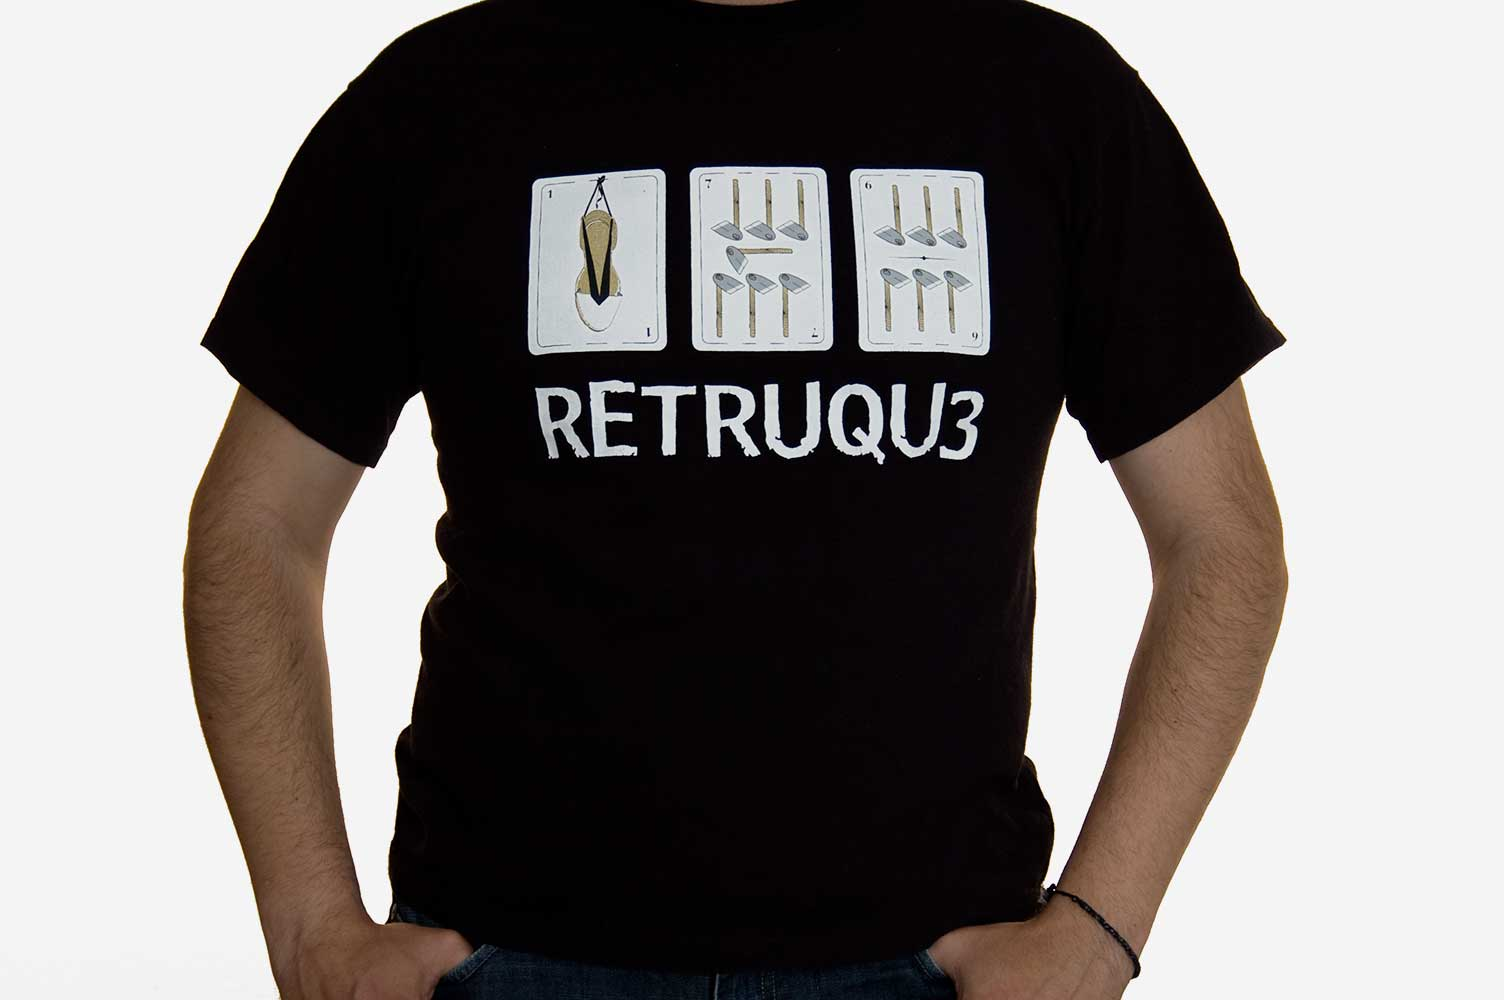 Camiseta Bajoqueta rock retruqu3